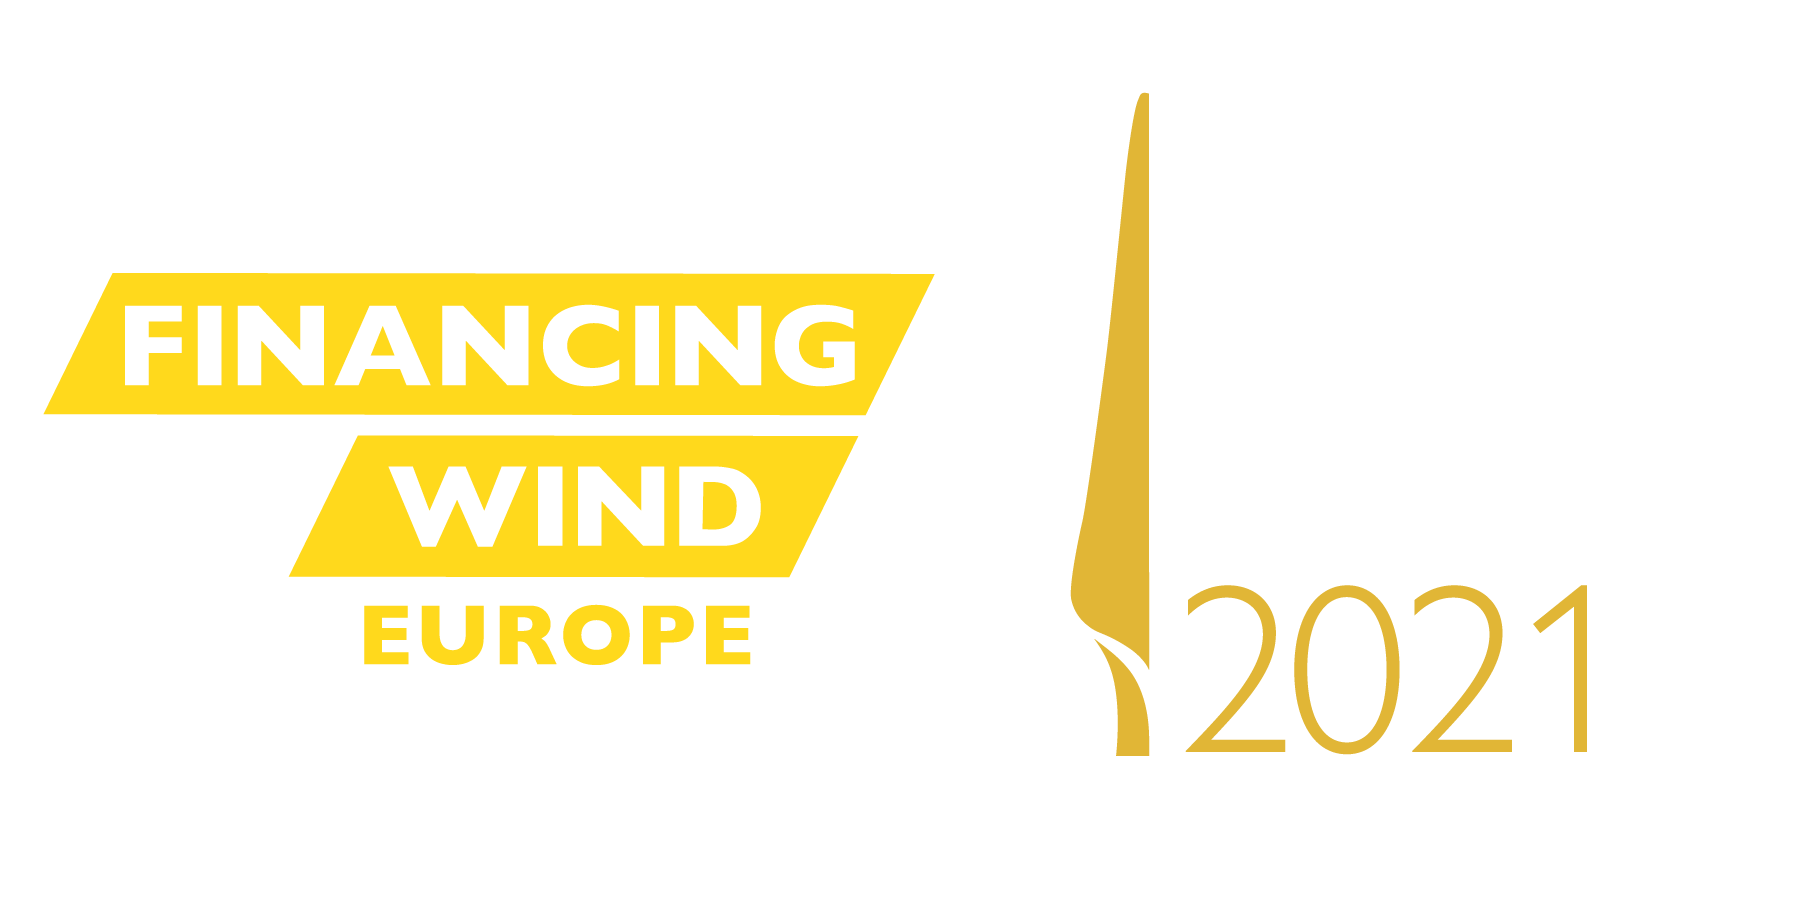 Logos for Financing Wind Europe and Wind Investment Awards 2021.